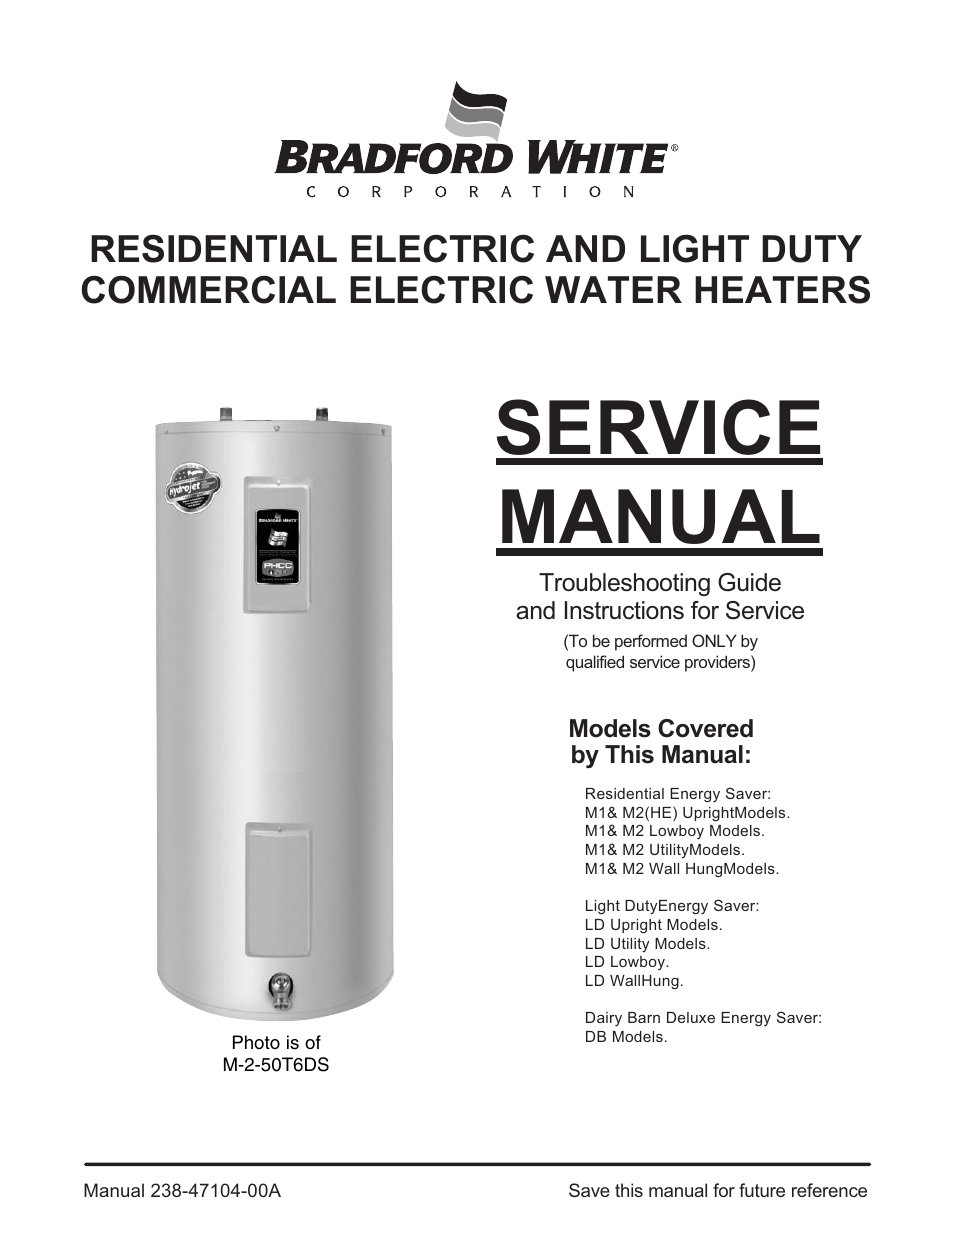 medium resolution of bradford white db 80r3ds user manual 40 pages also for ld wh30l3 1 ld wh20l3 1 ld wh12u3 1 ld wh6u3 1 ld 50l3 3 ld 40l3 3 ld 30l3 3 ld 20l3 3